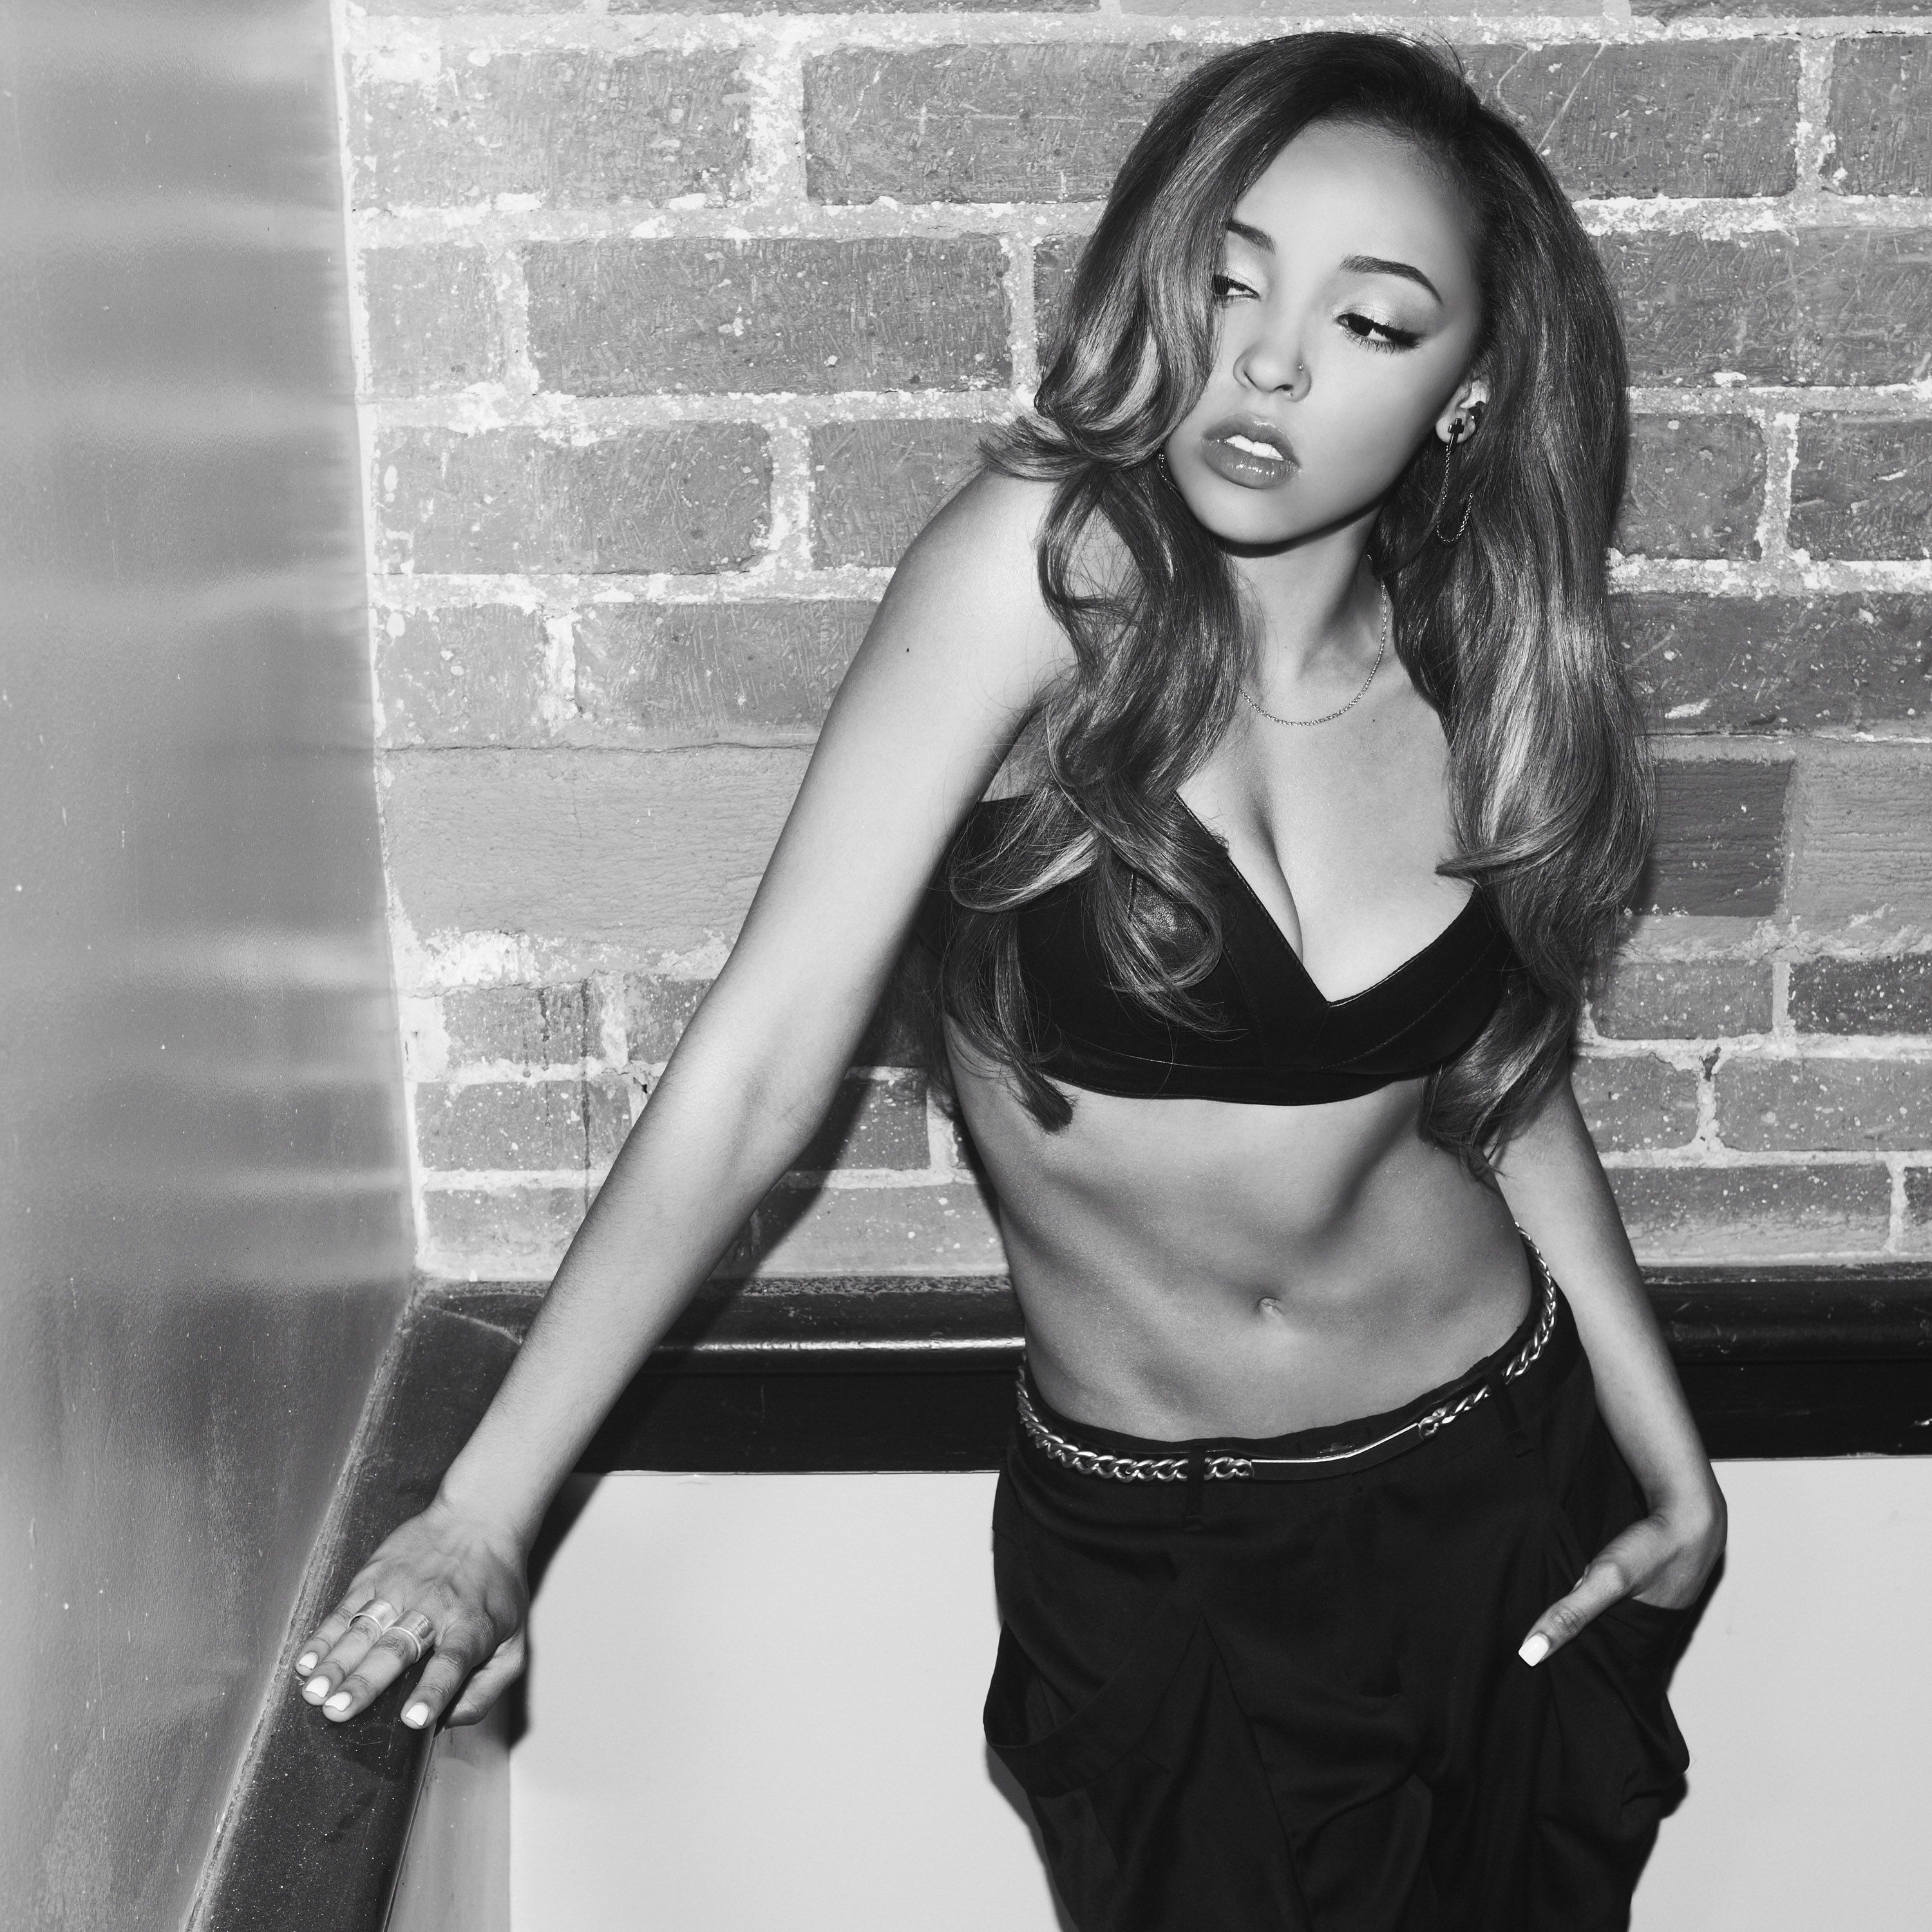 tinashe kachingwe; don't really rp her, but i nut when i see her.